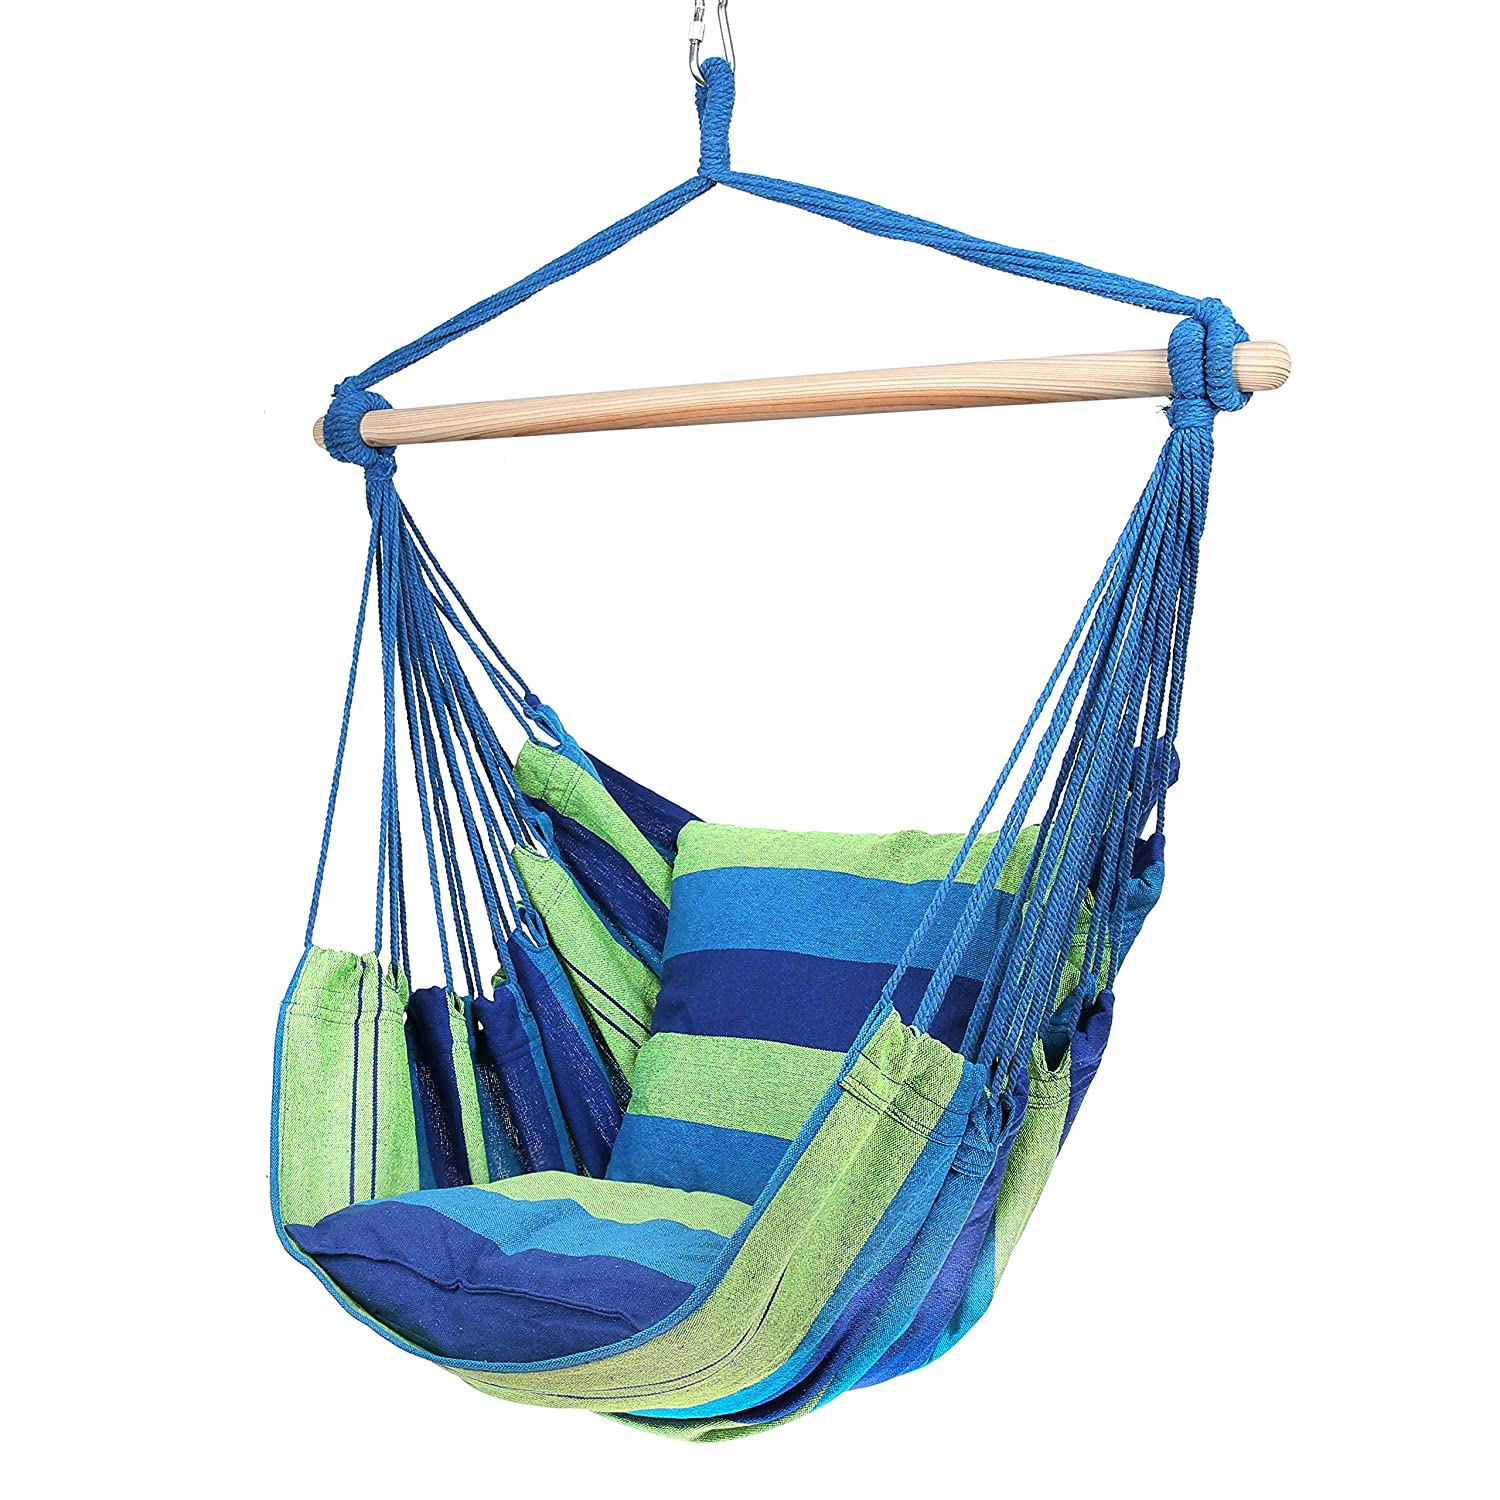 Blissun Hanging Hammock Chair, Hanging Swing Chair with Two Cushions, 34 Inch Wide Seat Blue Green Stripes